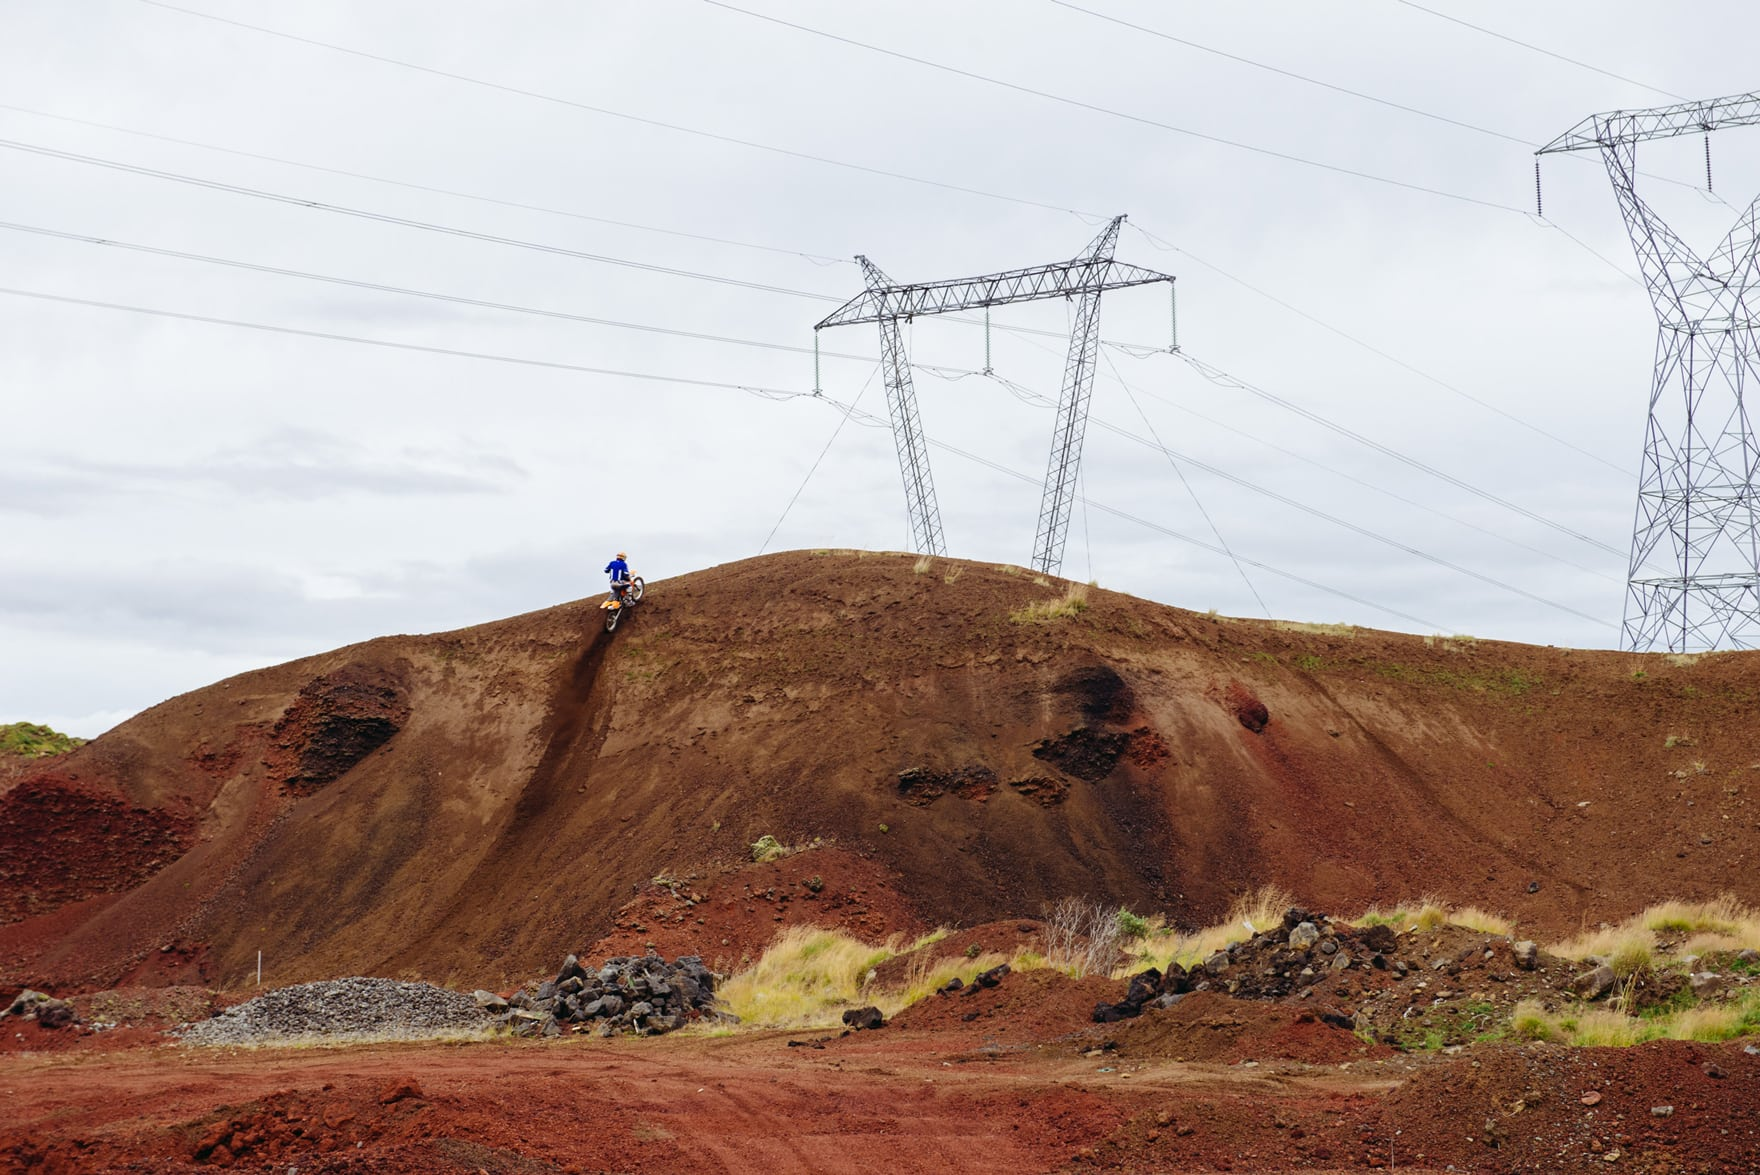 Solo Dirt bike cyclist rides up a tall red canyon with powerlines in the background